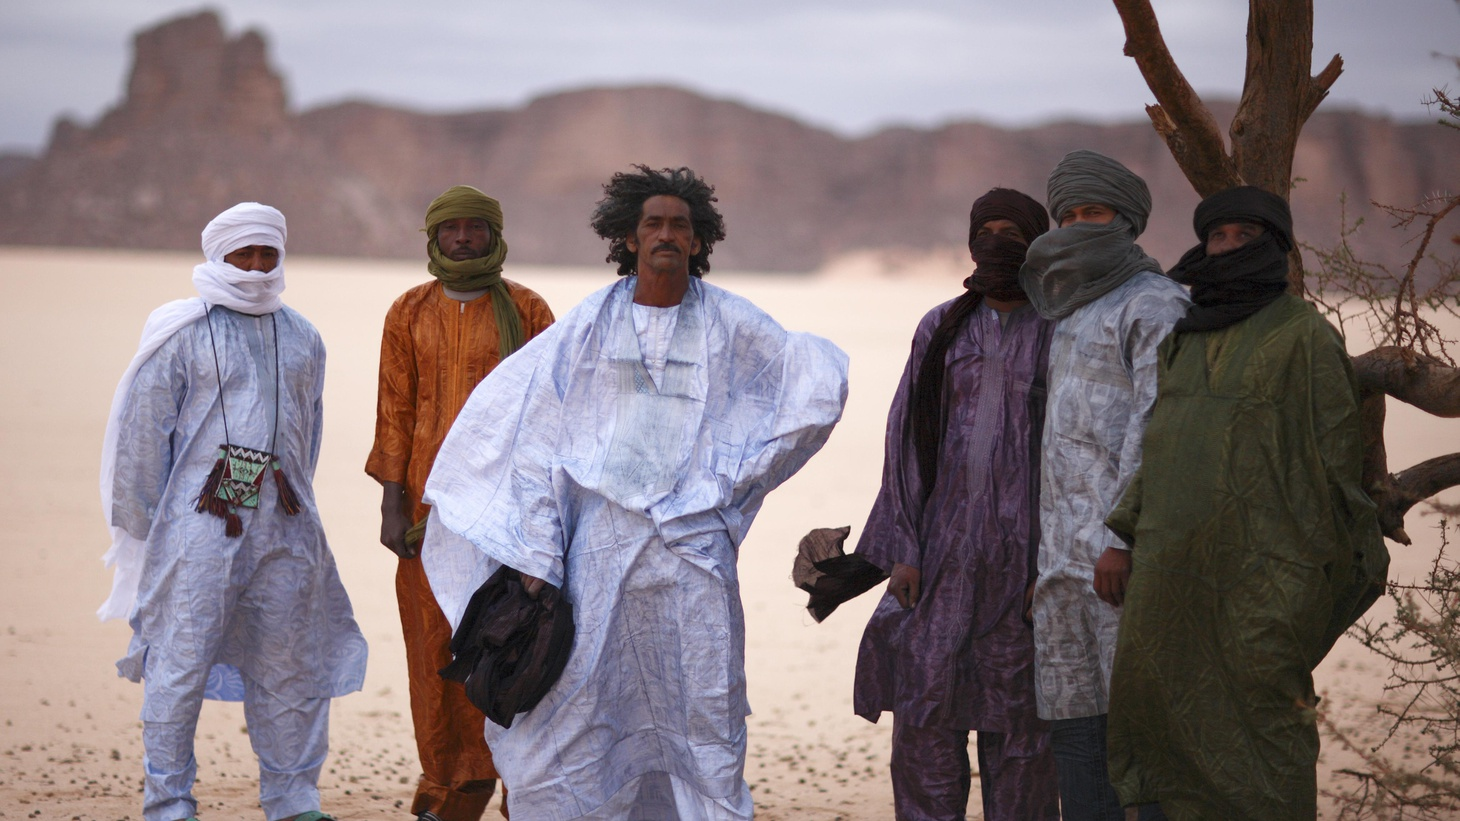 Tassili will be available to stream on demand from August 22 through September 20, 2011. The album will be released on Tuesday, August 30, 2011.